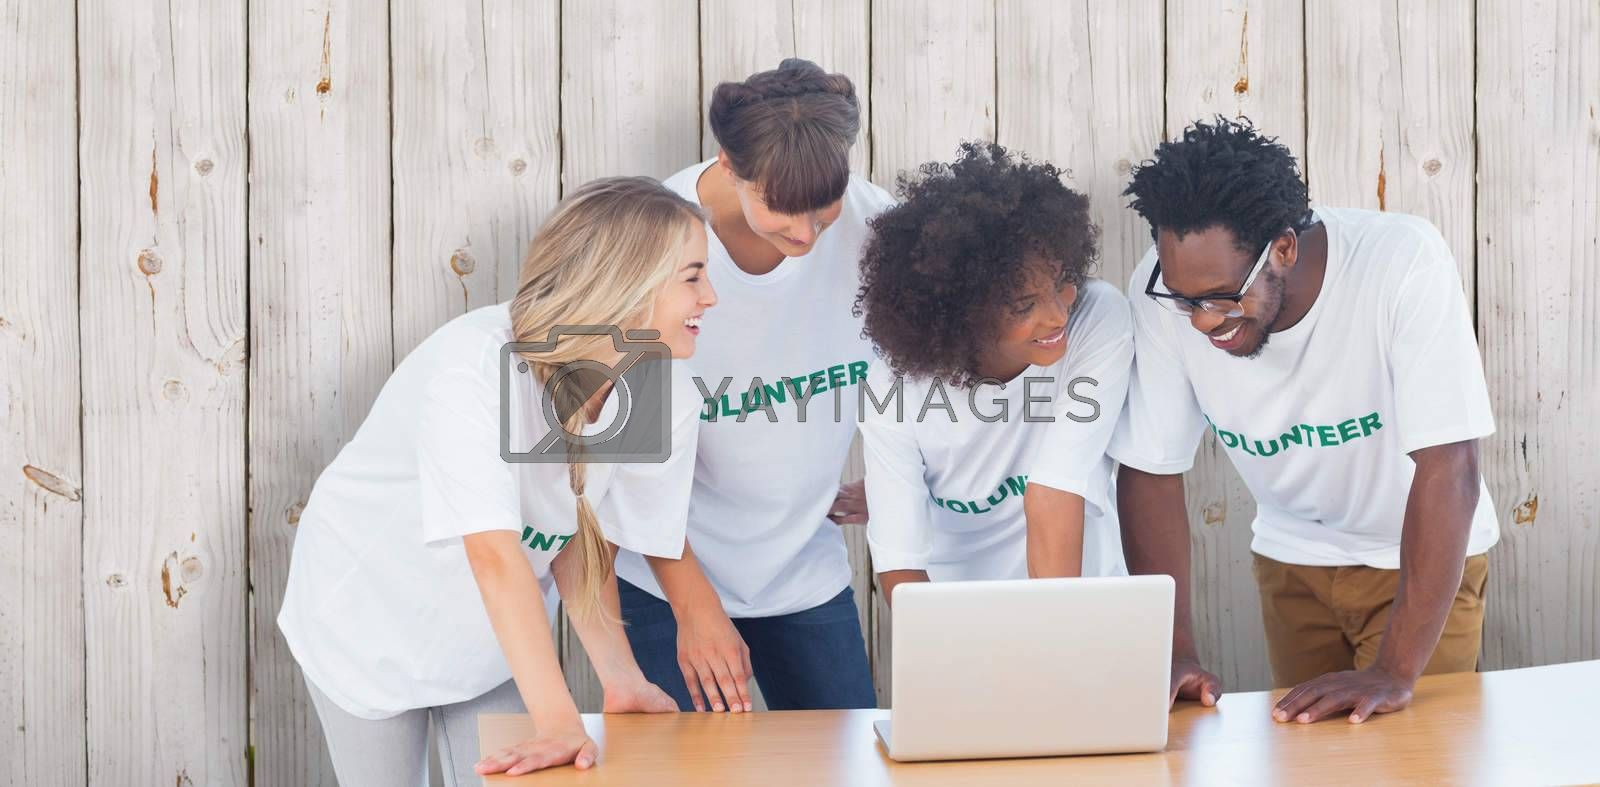 Smiling volunteers working together on a laptop against wooden background